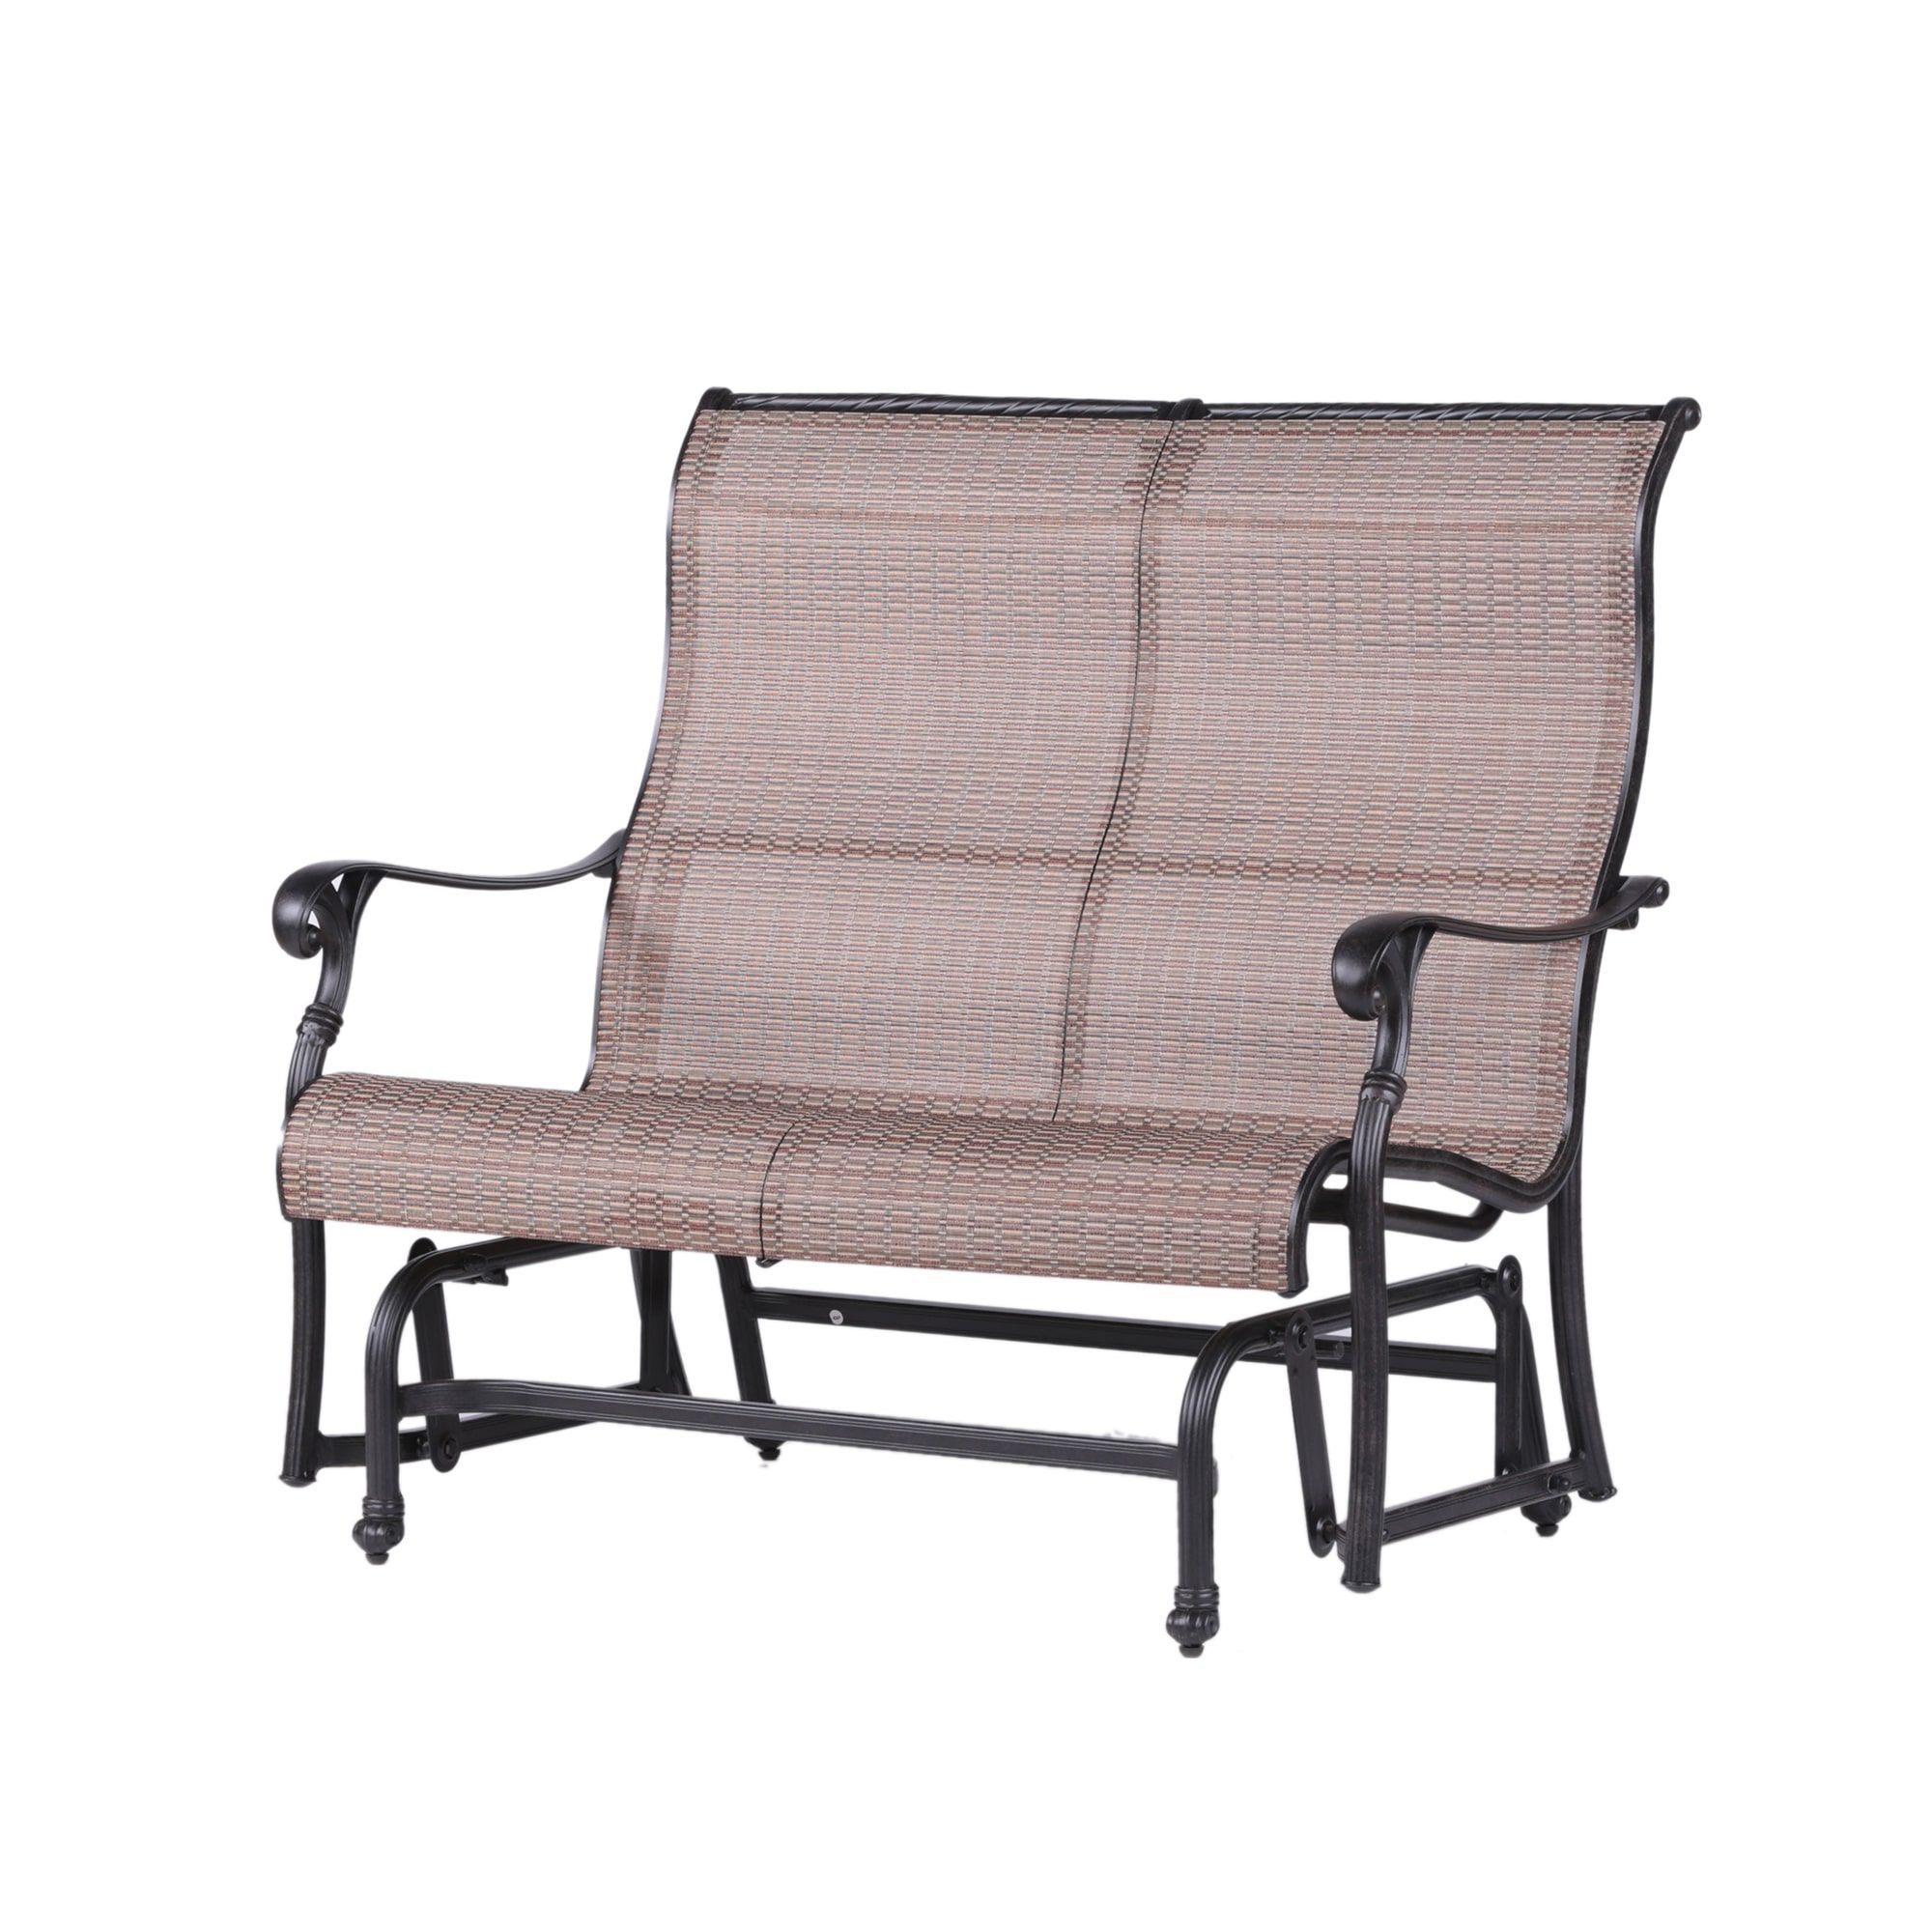 Yorkshire Cast Aluminum (silver) Sling Fabric Double Glider Within Preferred Outdoor Fabric Glider Benches (View 12 of 30)